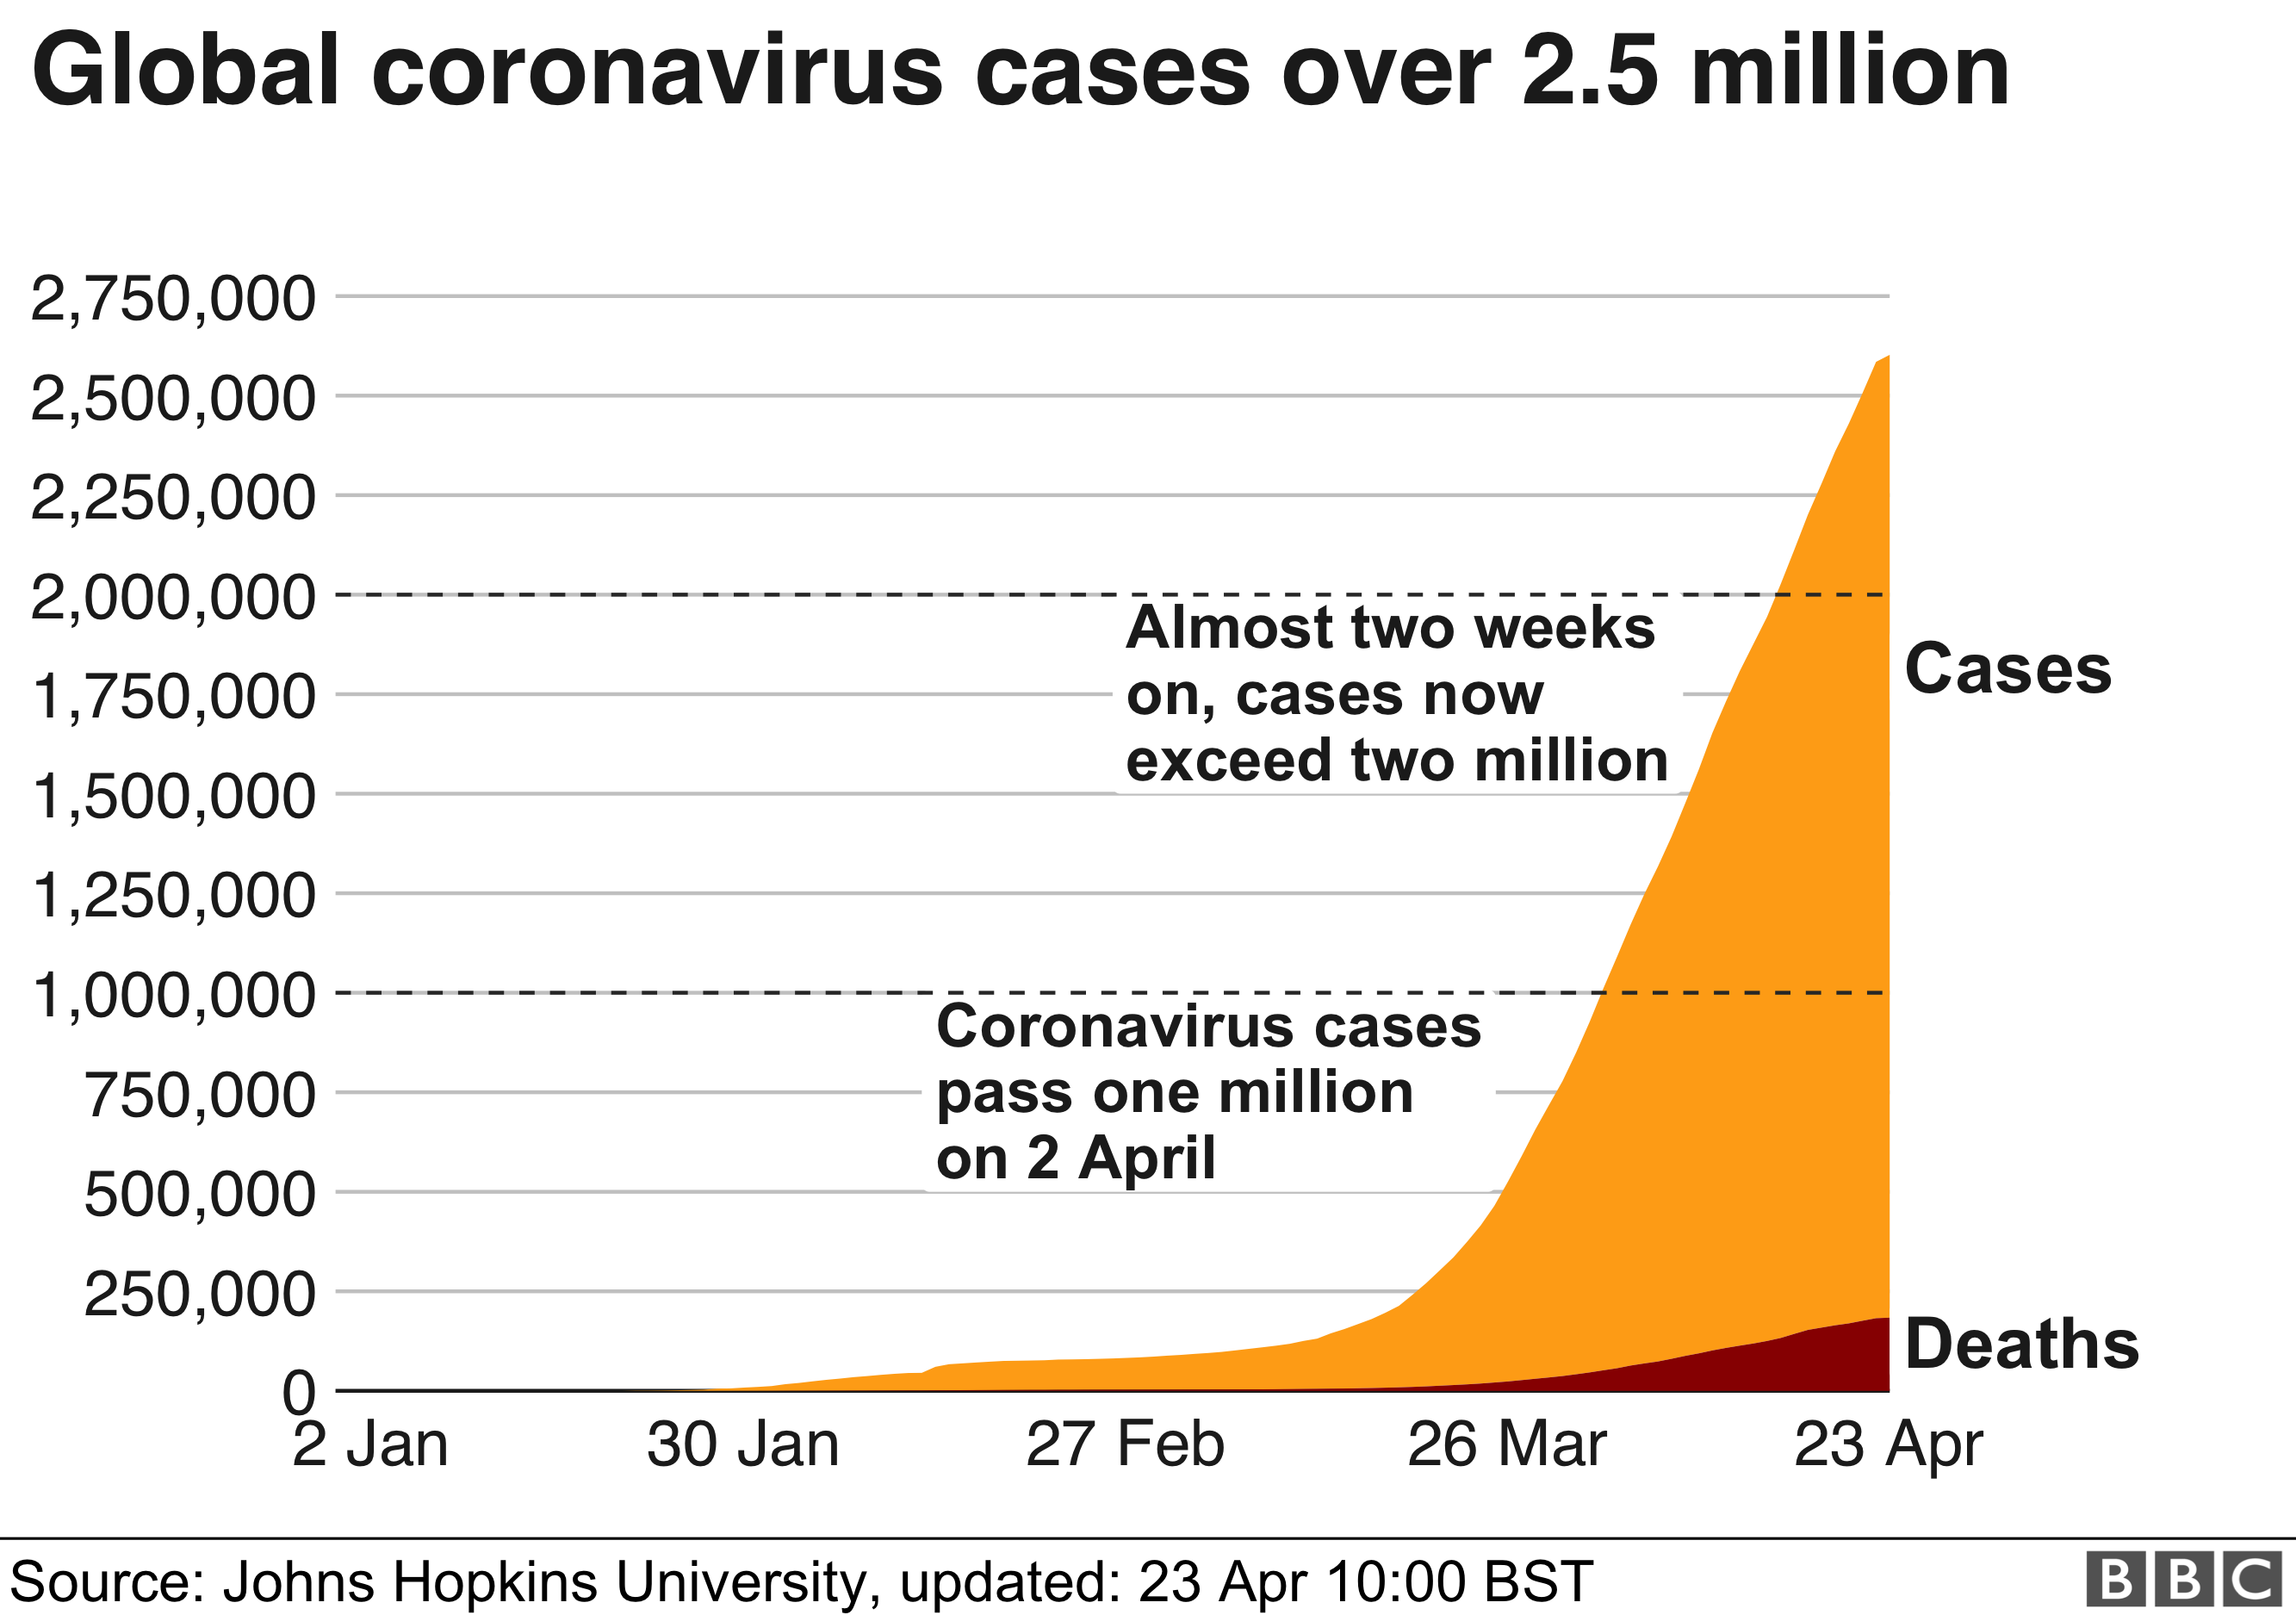 Chart showing cases and deaths from coronavirus. The cumulative number of cases worldwide passed one million on 2 April and two million on 15 April.